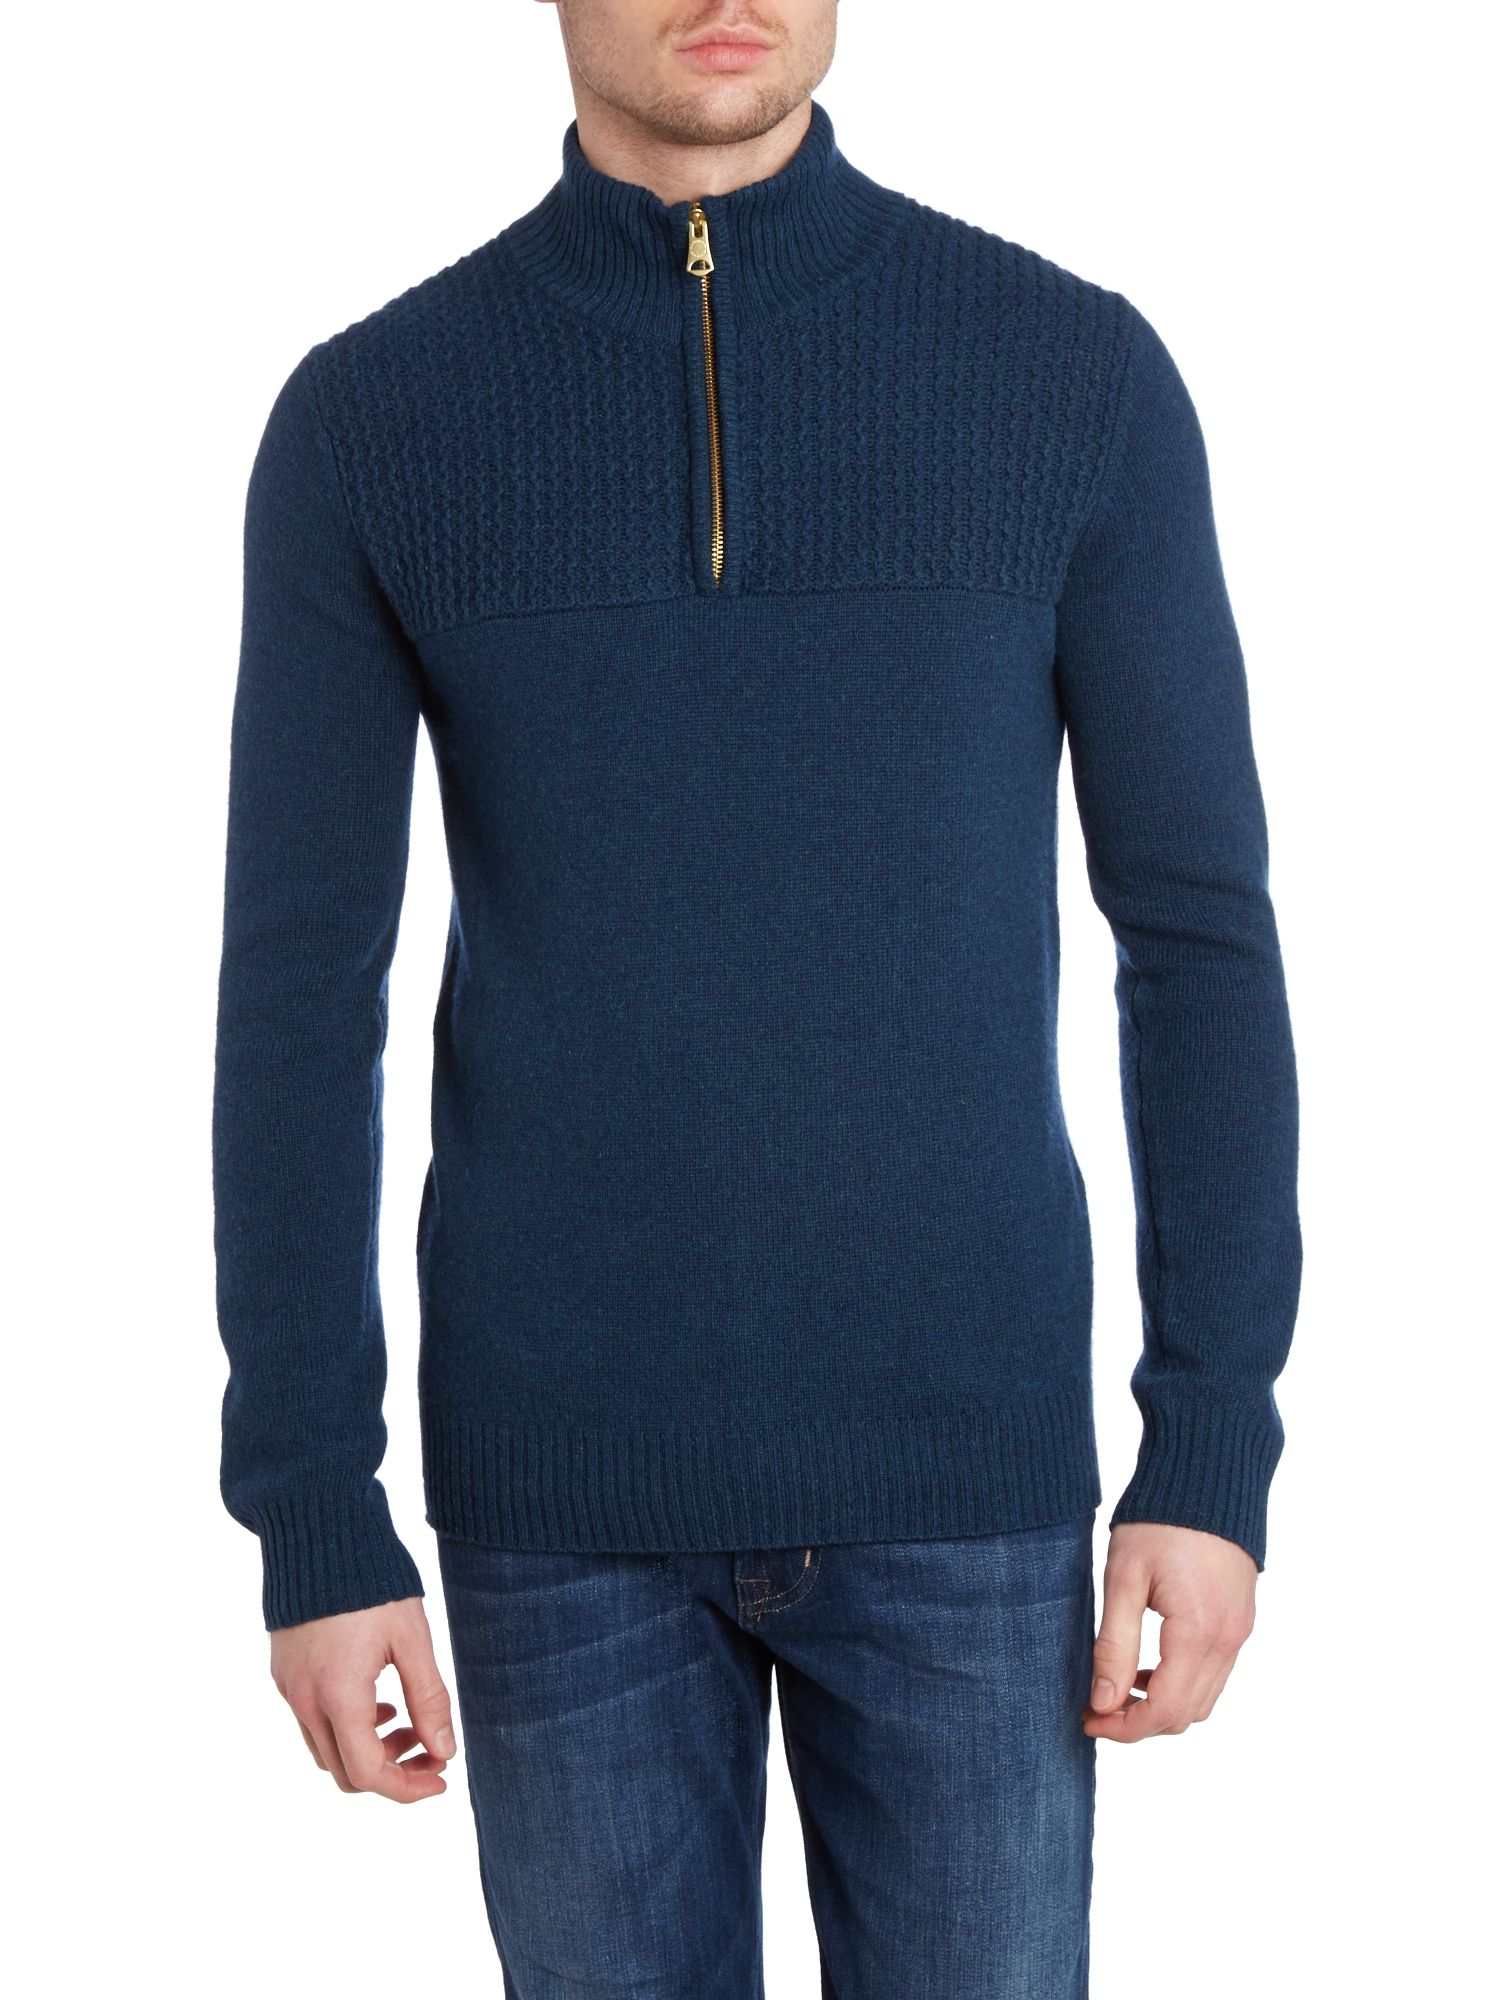 Half zip up funnel neck sweater